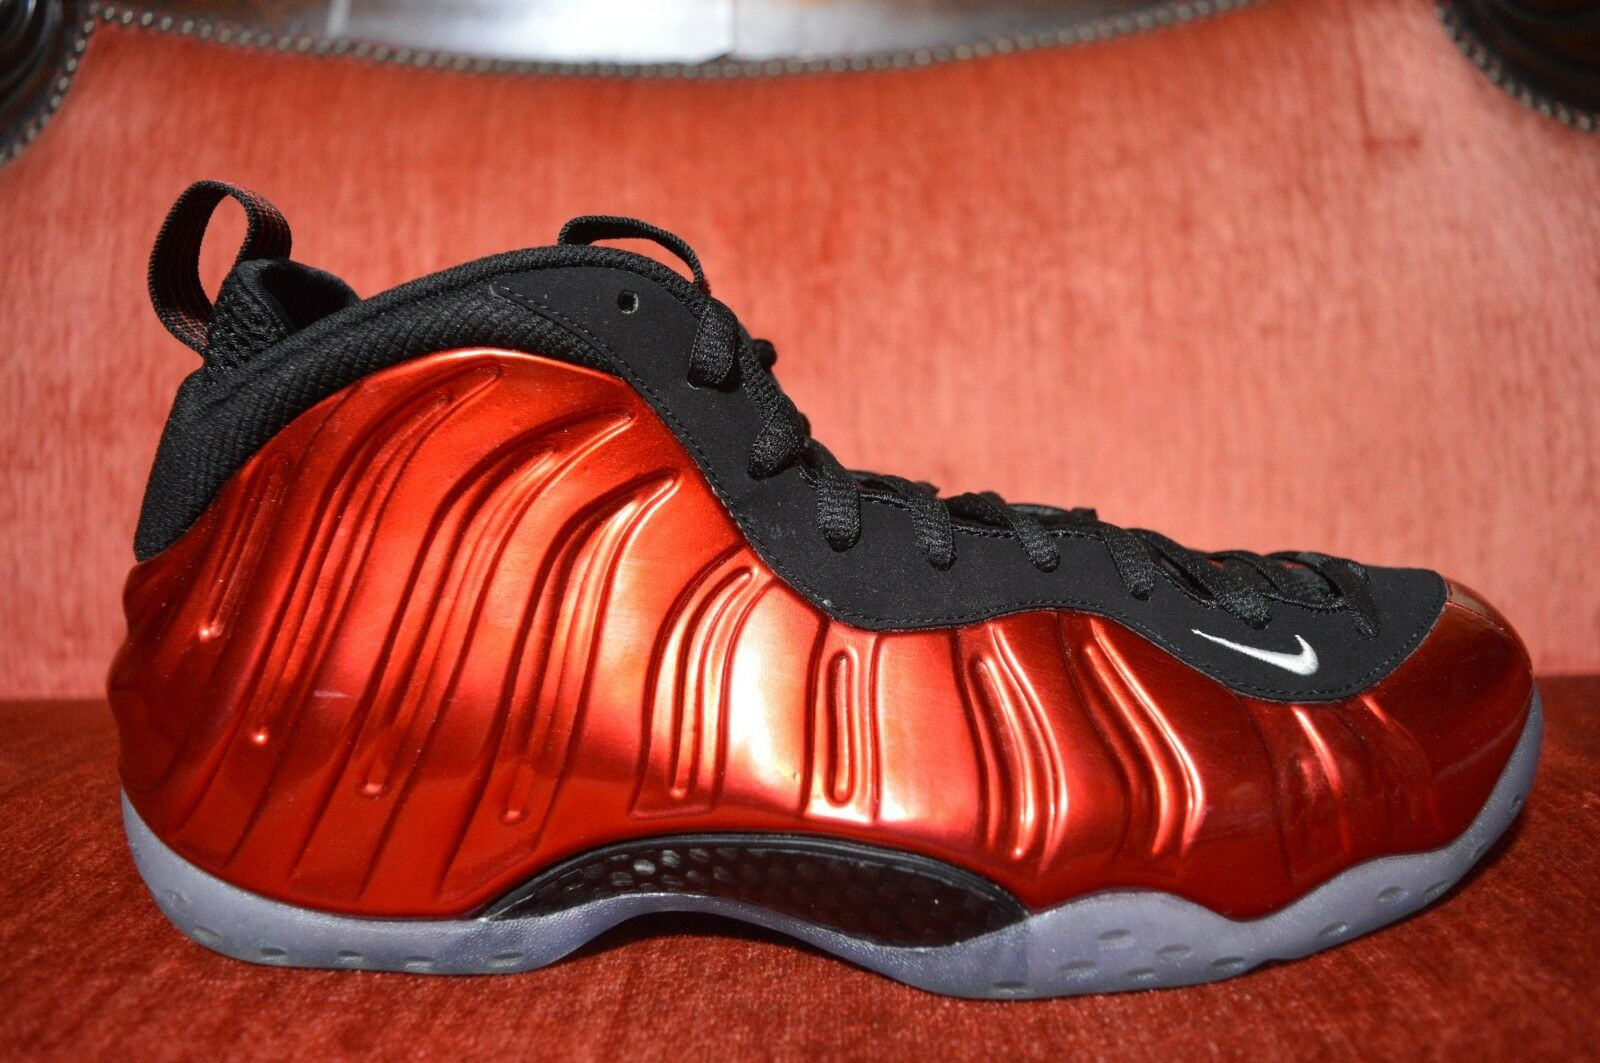 WORN 1X 2012 Nike Air Foamposite One Metallic Red Size Size Size 11 314996-610 Penny 4abac0